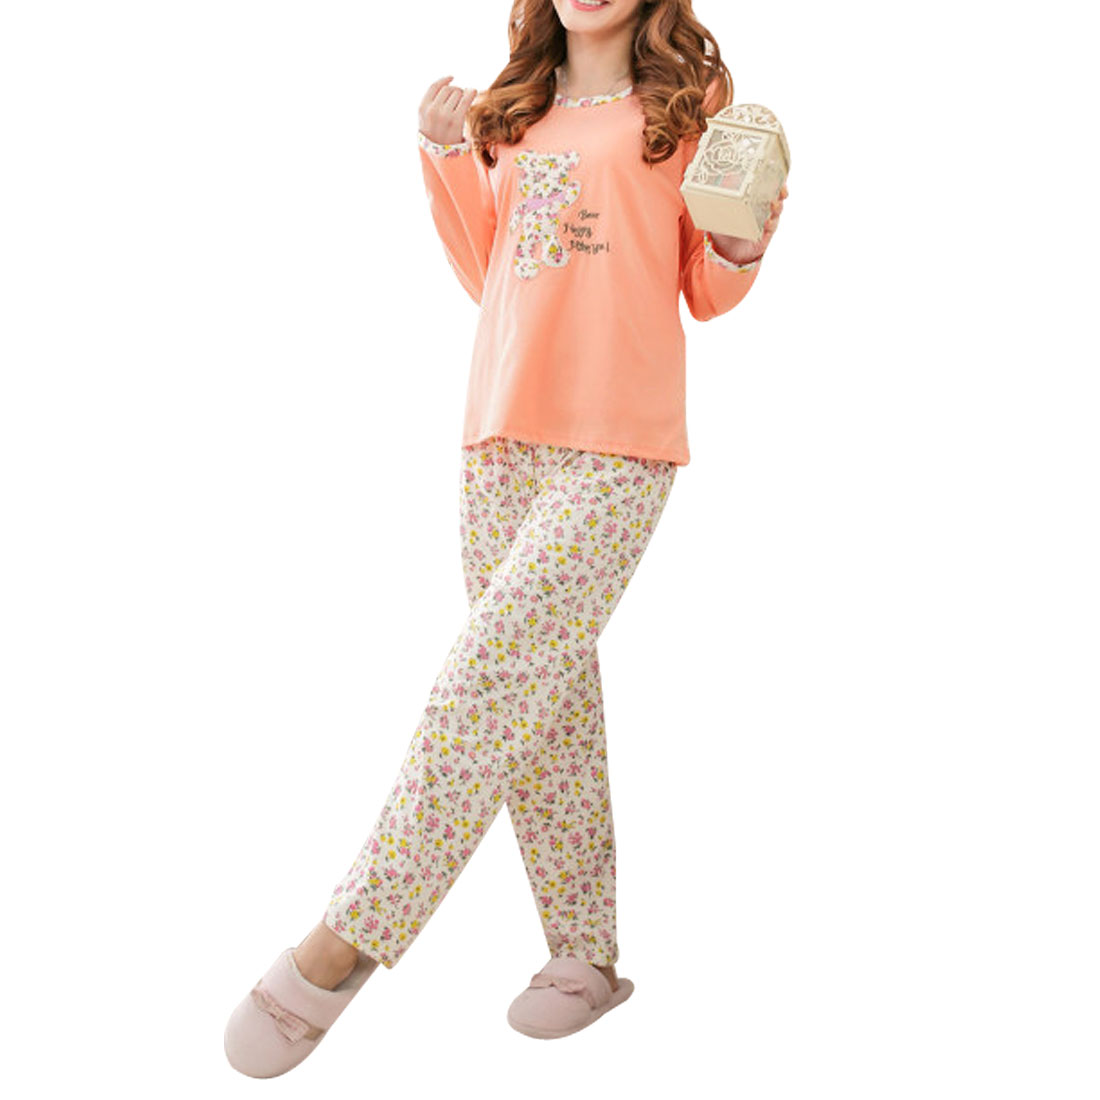 Women Flowers Printed Round Neck Pullover Leisure Pajama Sets Peach Pink White M